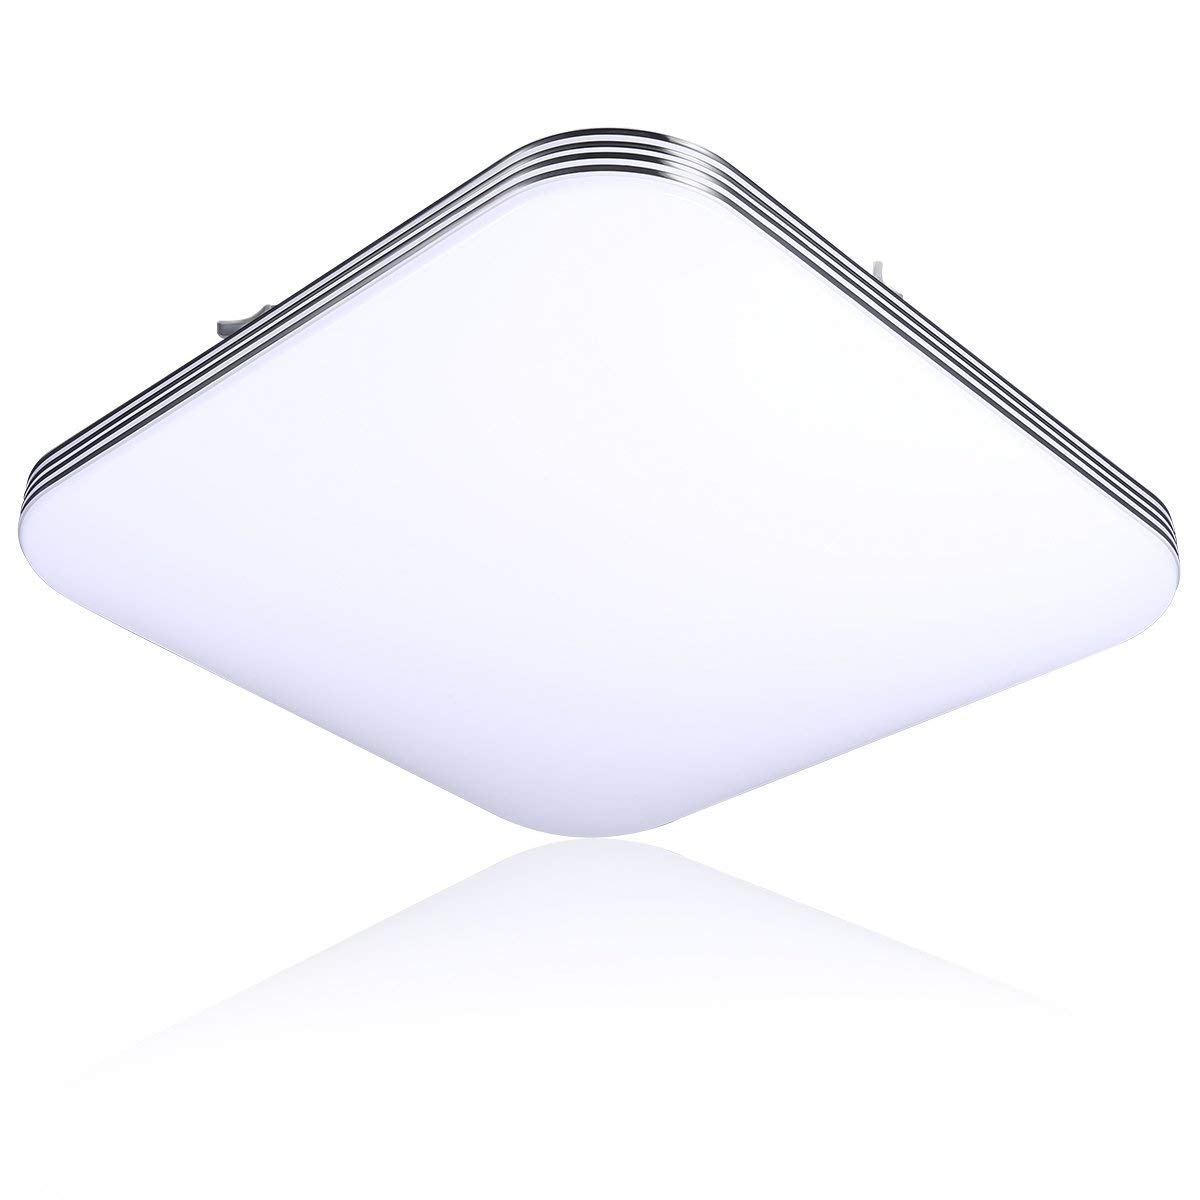 B right led ceiling light 13inch 20w 120w equivalent 5000k cool white square lighting fixture for bathroom kitchen hallway non dimmable amazon